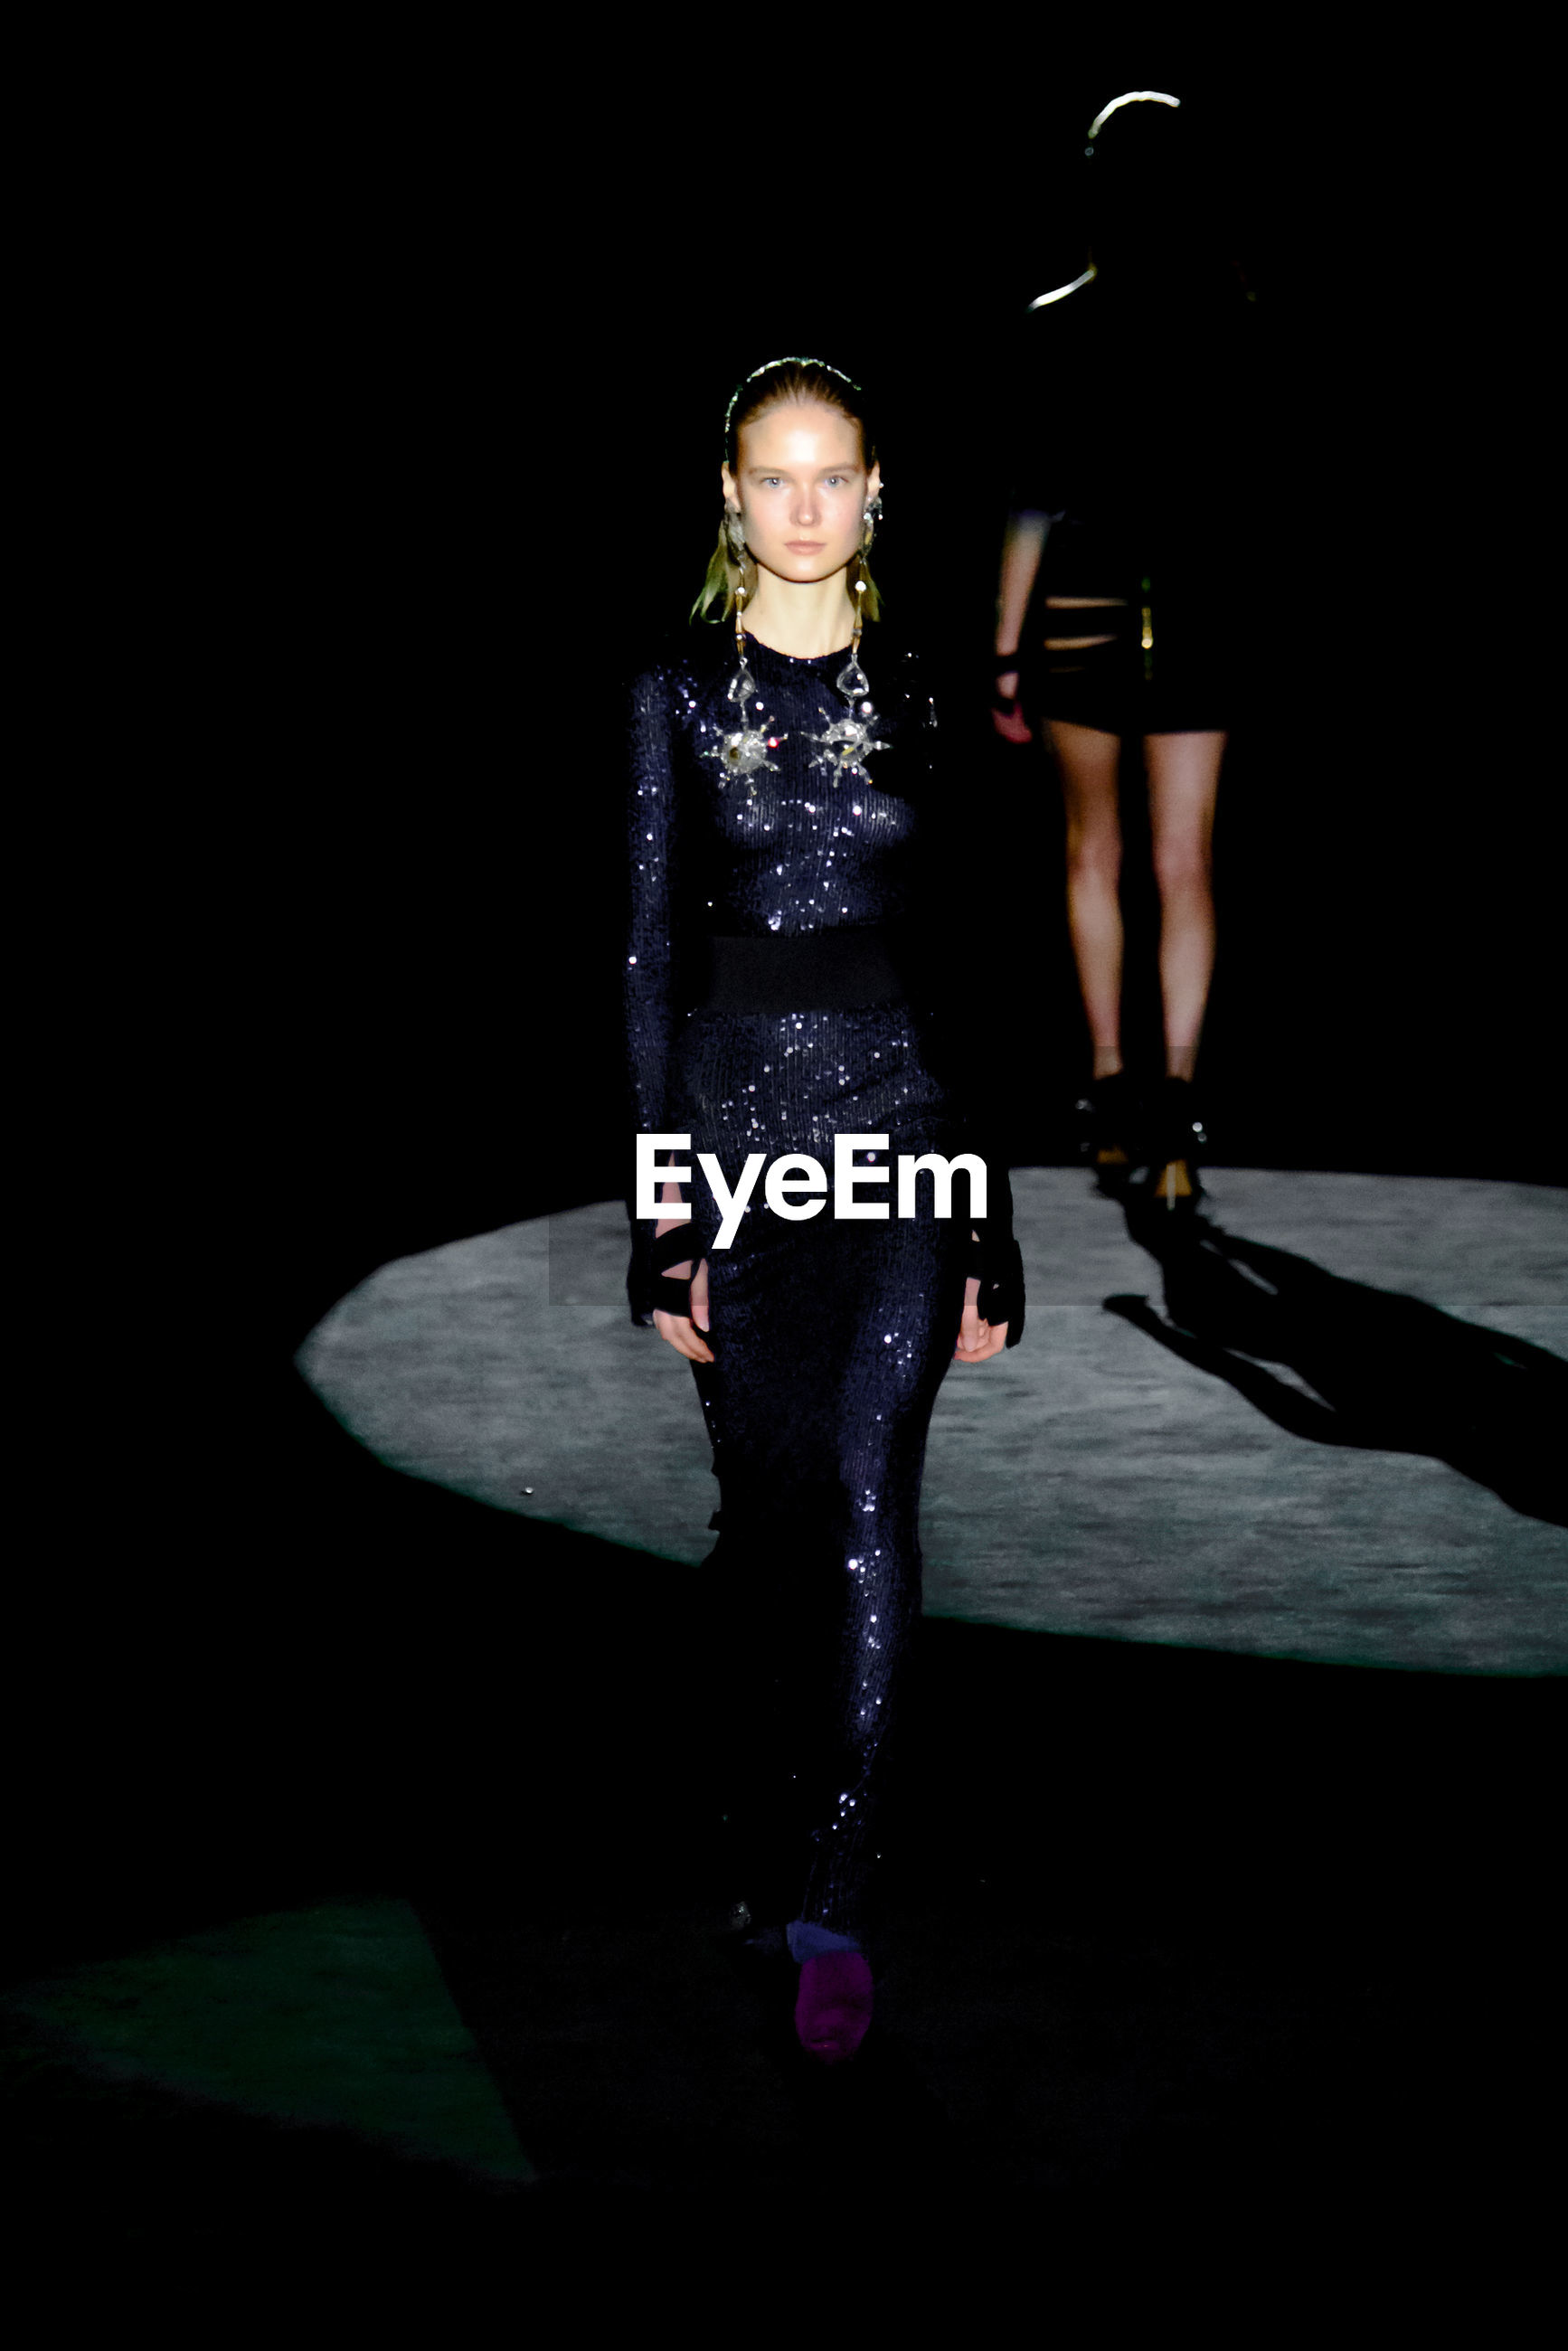 full length, one person, adult, women, fashion, portrait, young adult, black, clothing, indoors, black background, shadow, performance art, looking at camera, darkness, footwear, studio shot, front view, standing, night, arts culture and entertainment, person, runway, female, dress